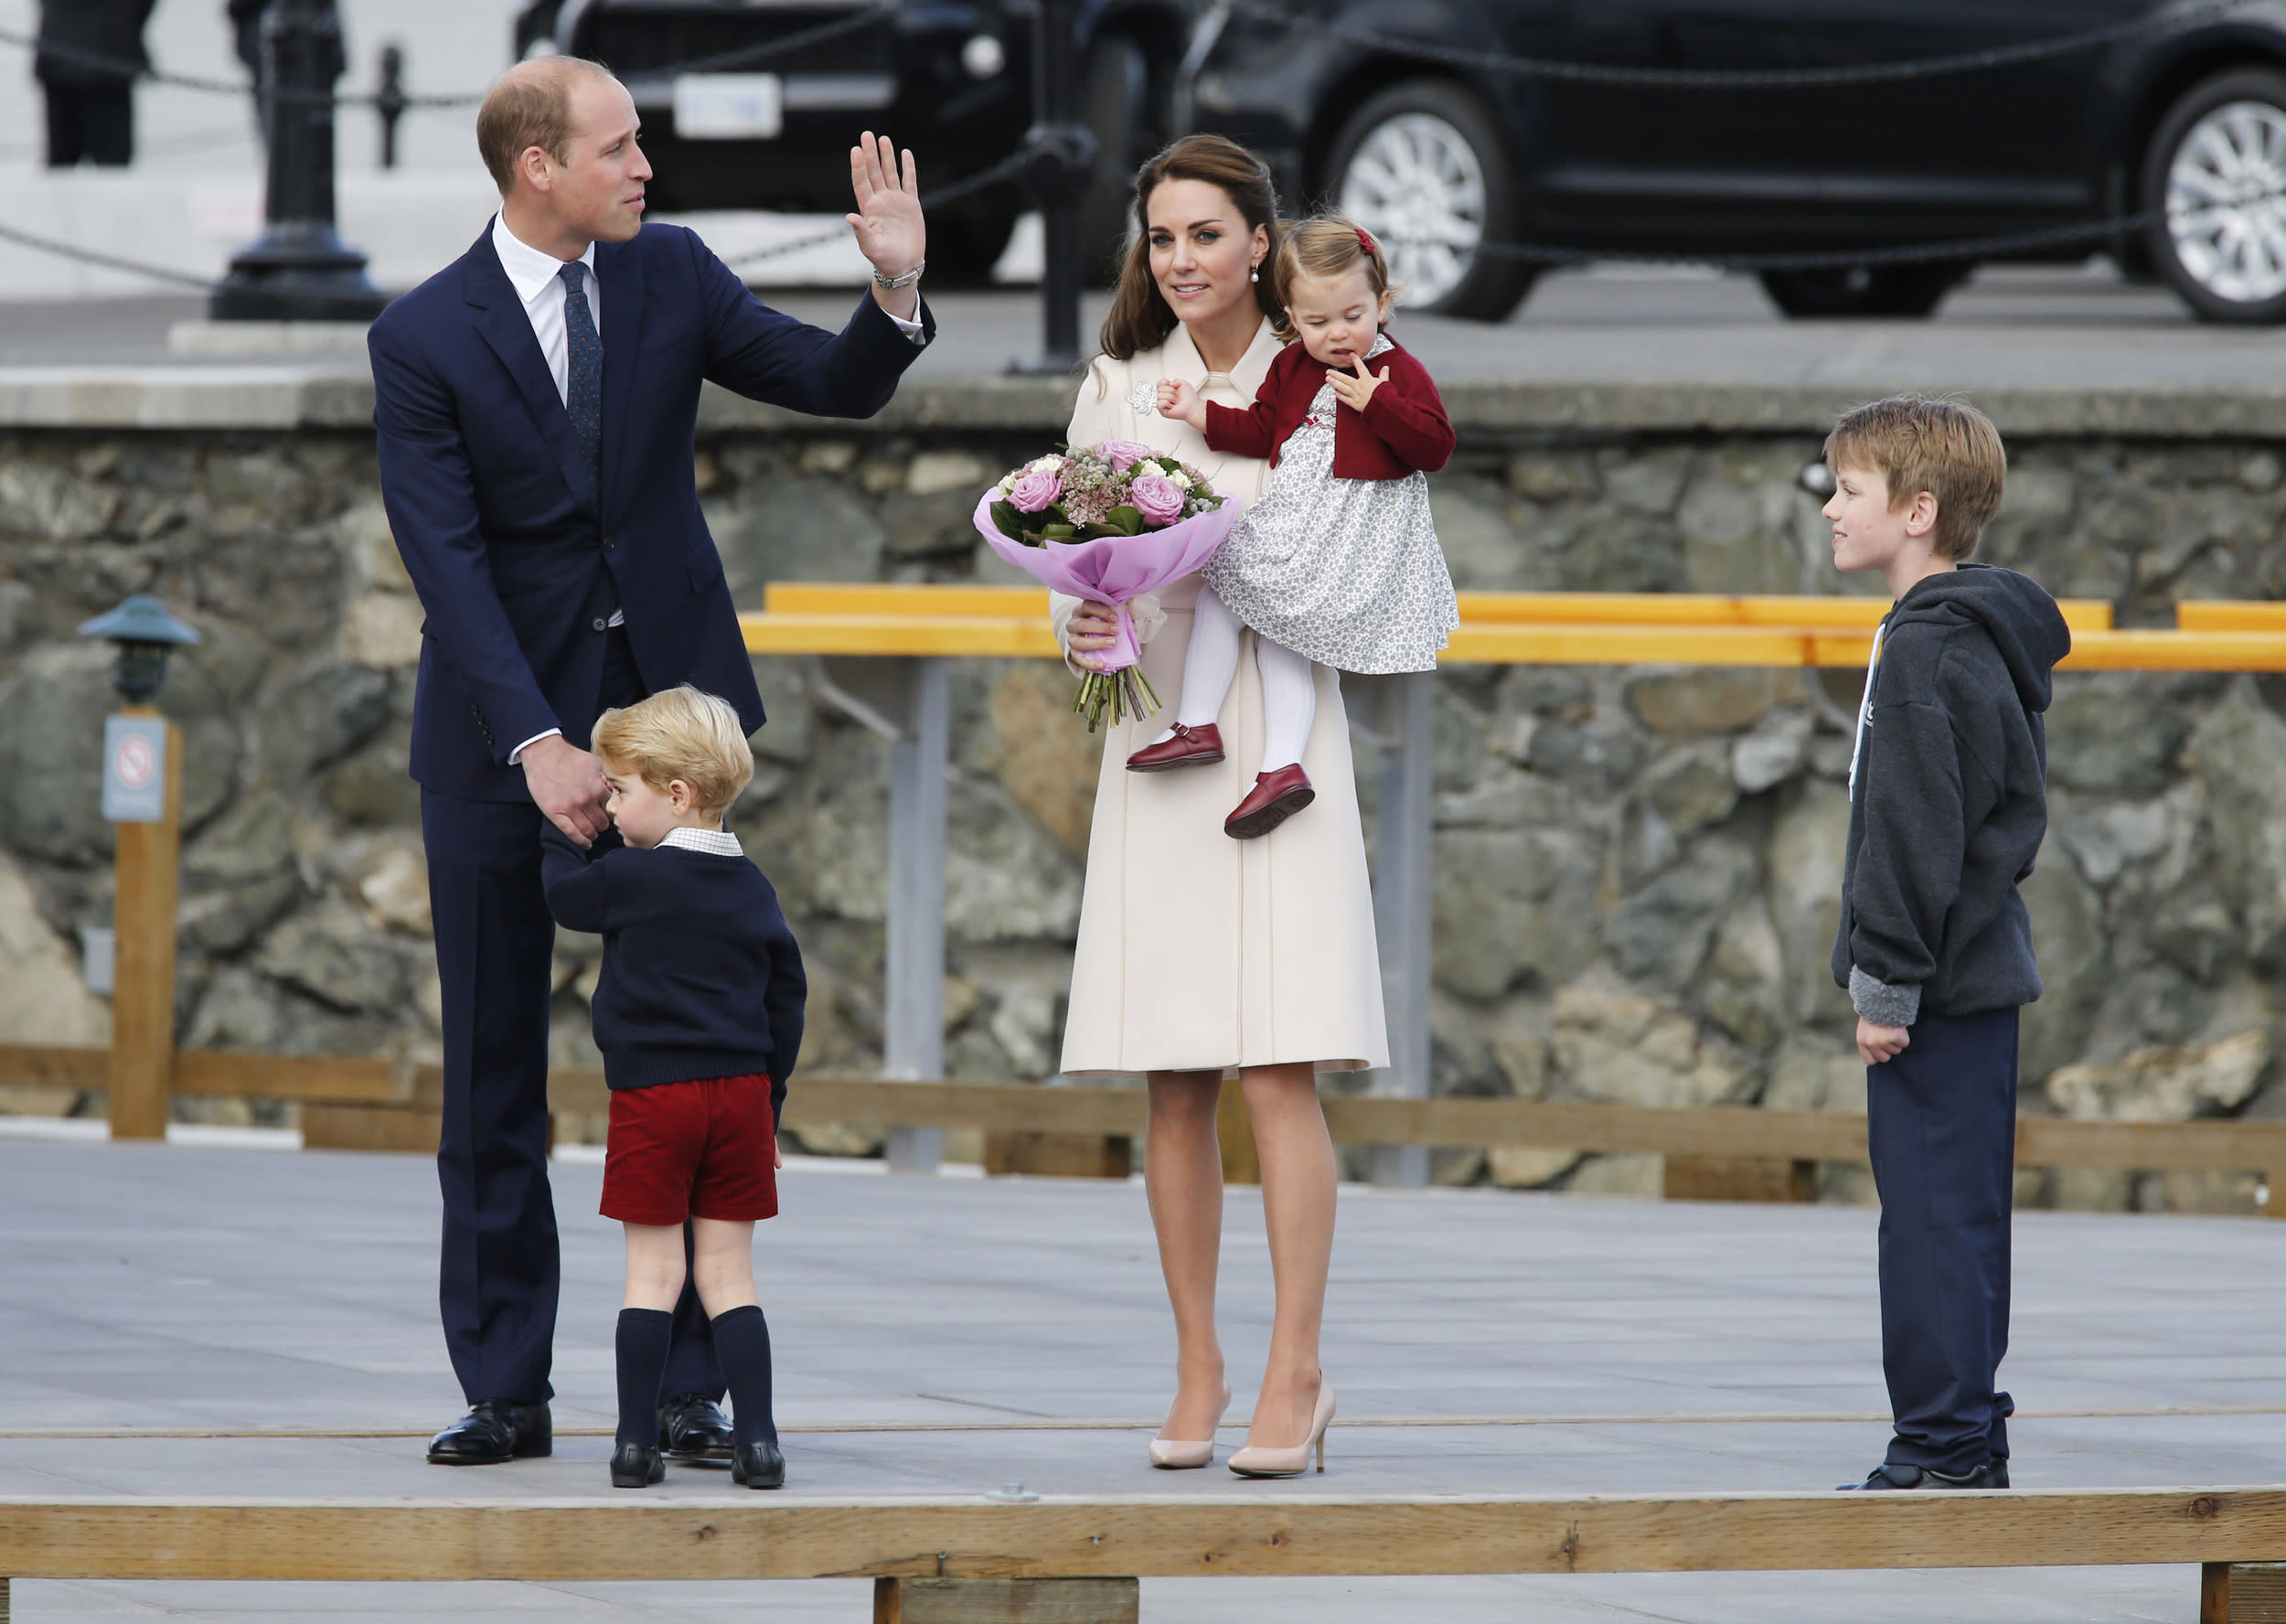 Britain's Prince William, Catherine, Duchess of Cambridge, Prince George and Princess Charlotte arrive to board a floatplane for their official departure from Canada in Victoria, British Columbia, Canada, October 1, 2016. REUTERS/Chris Wattie